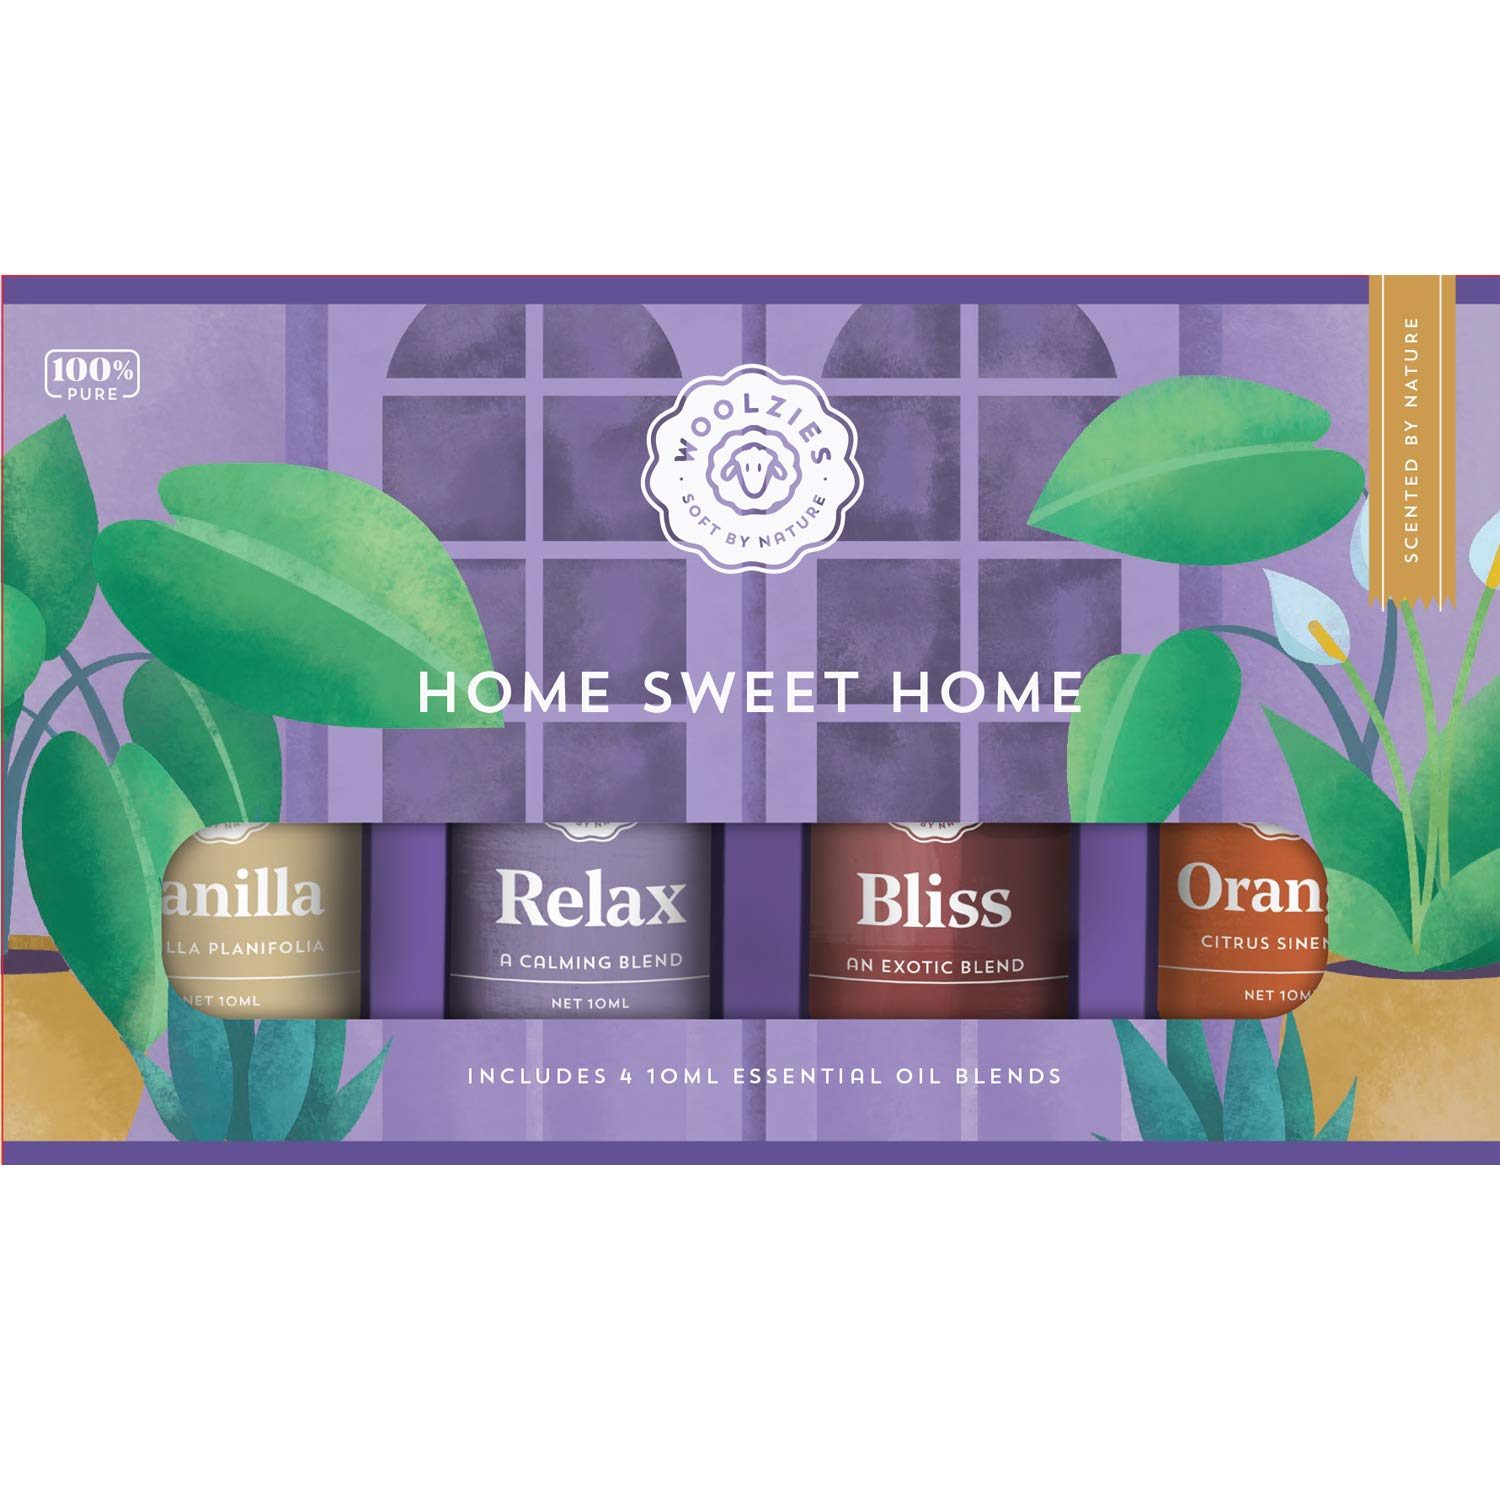 Woolzies 100% Pure Undiluted Home Sweet Home Essential Oil Set of 4 | Vanilla, Relax, Bliss & Orange Oils | Uplifting, Refreshing, Energizing, Calms Emotions | Therapeutic Grade |For Diffusion/Topical